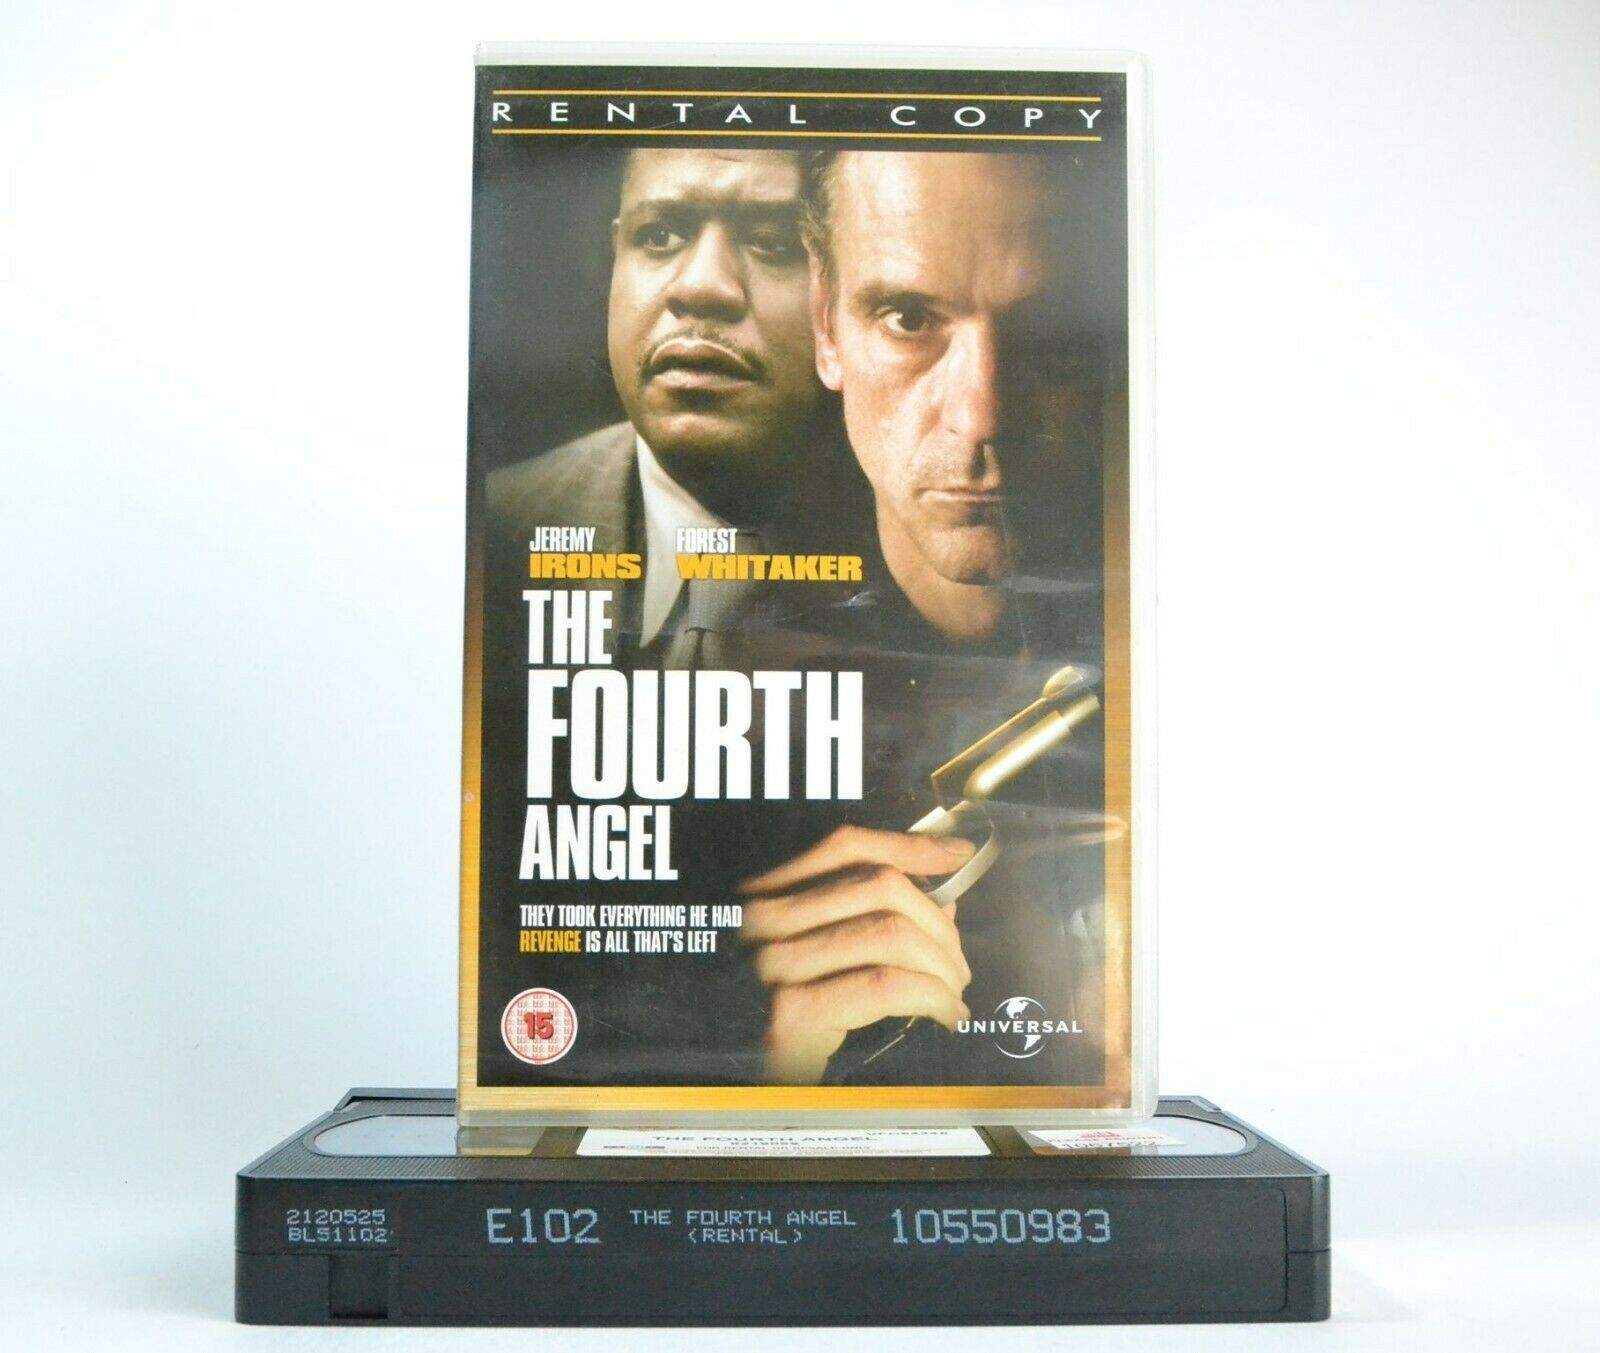 The Fourth Angel: British/Canadian Thriller - Jeremy Irons/Forest Whitaker - VHS